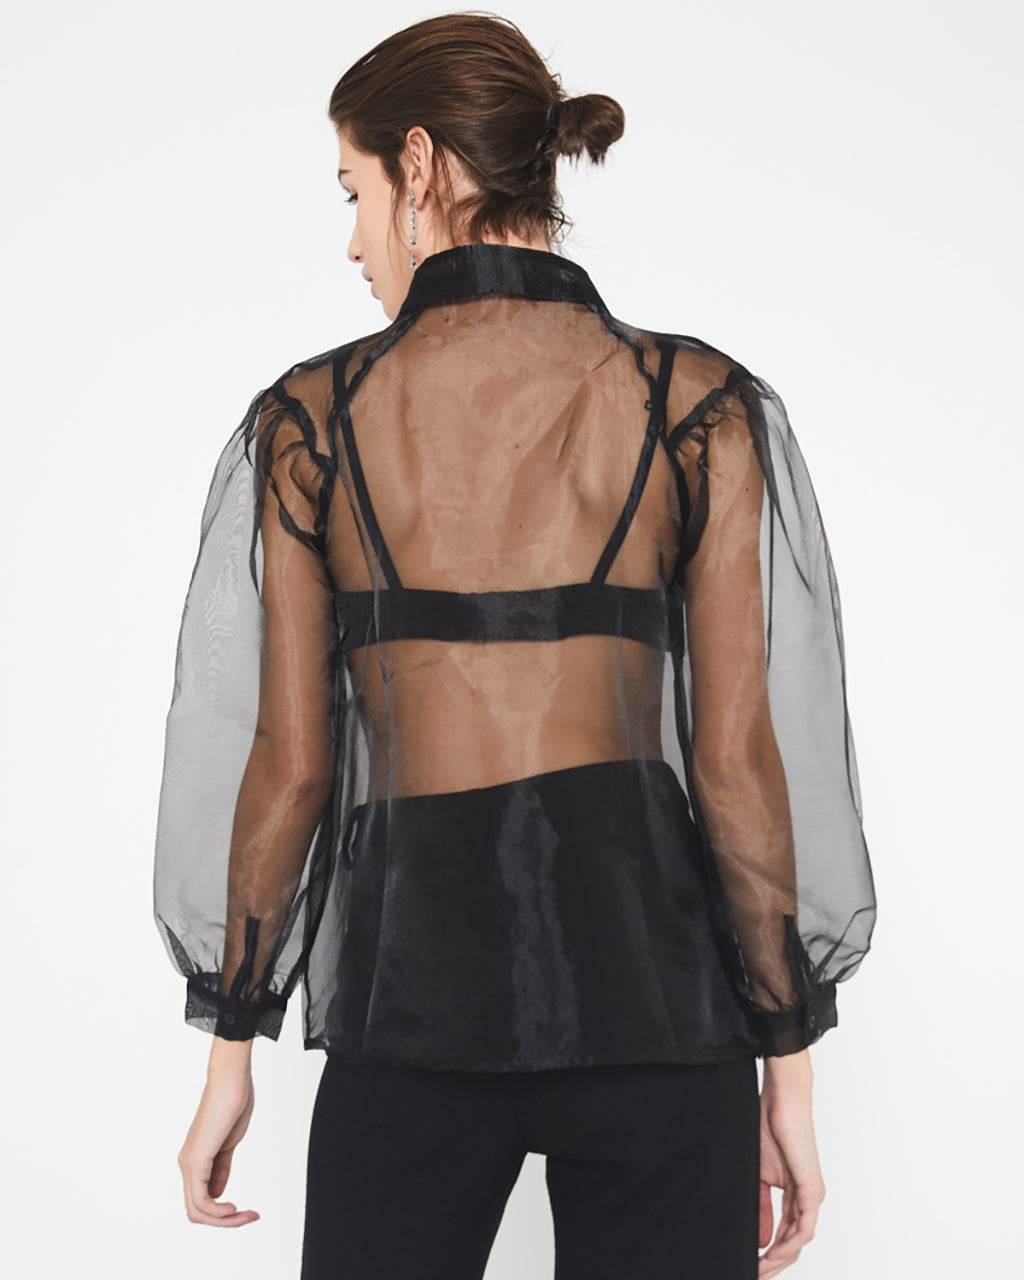 back view of model in transparent organza blouse